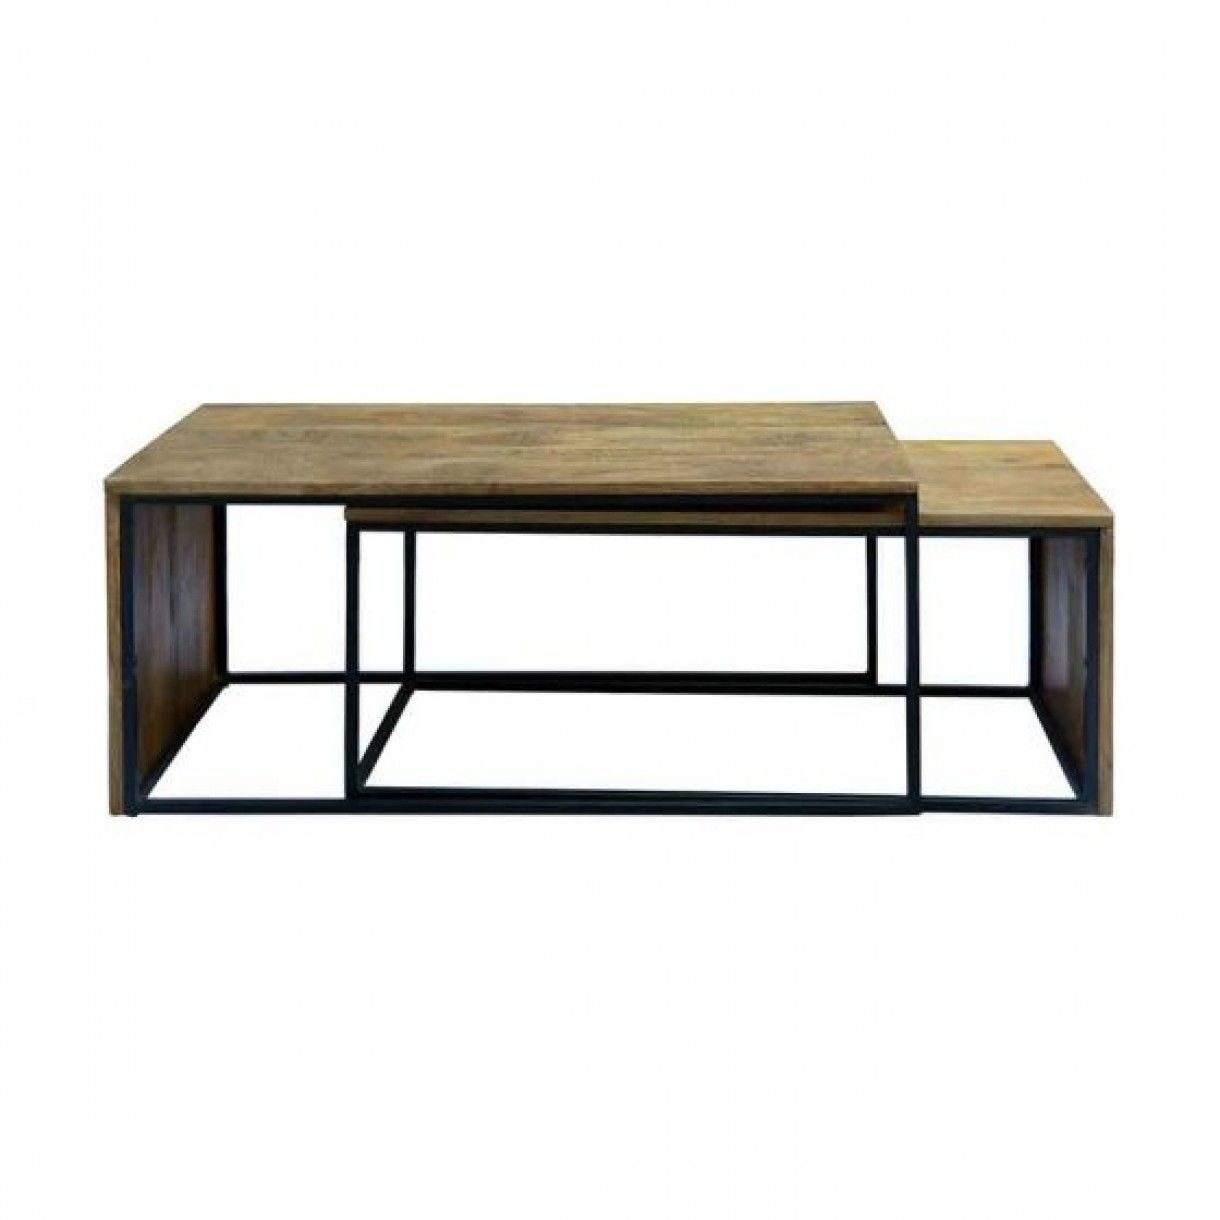 Fulham 2 Piece Nesting Coffee Table Set In 2021 Nesting Coffee Tables Coffee Table Coffee Table Setting [ 1220 x 1220 Pixel ]